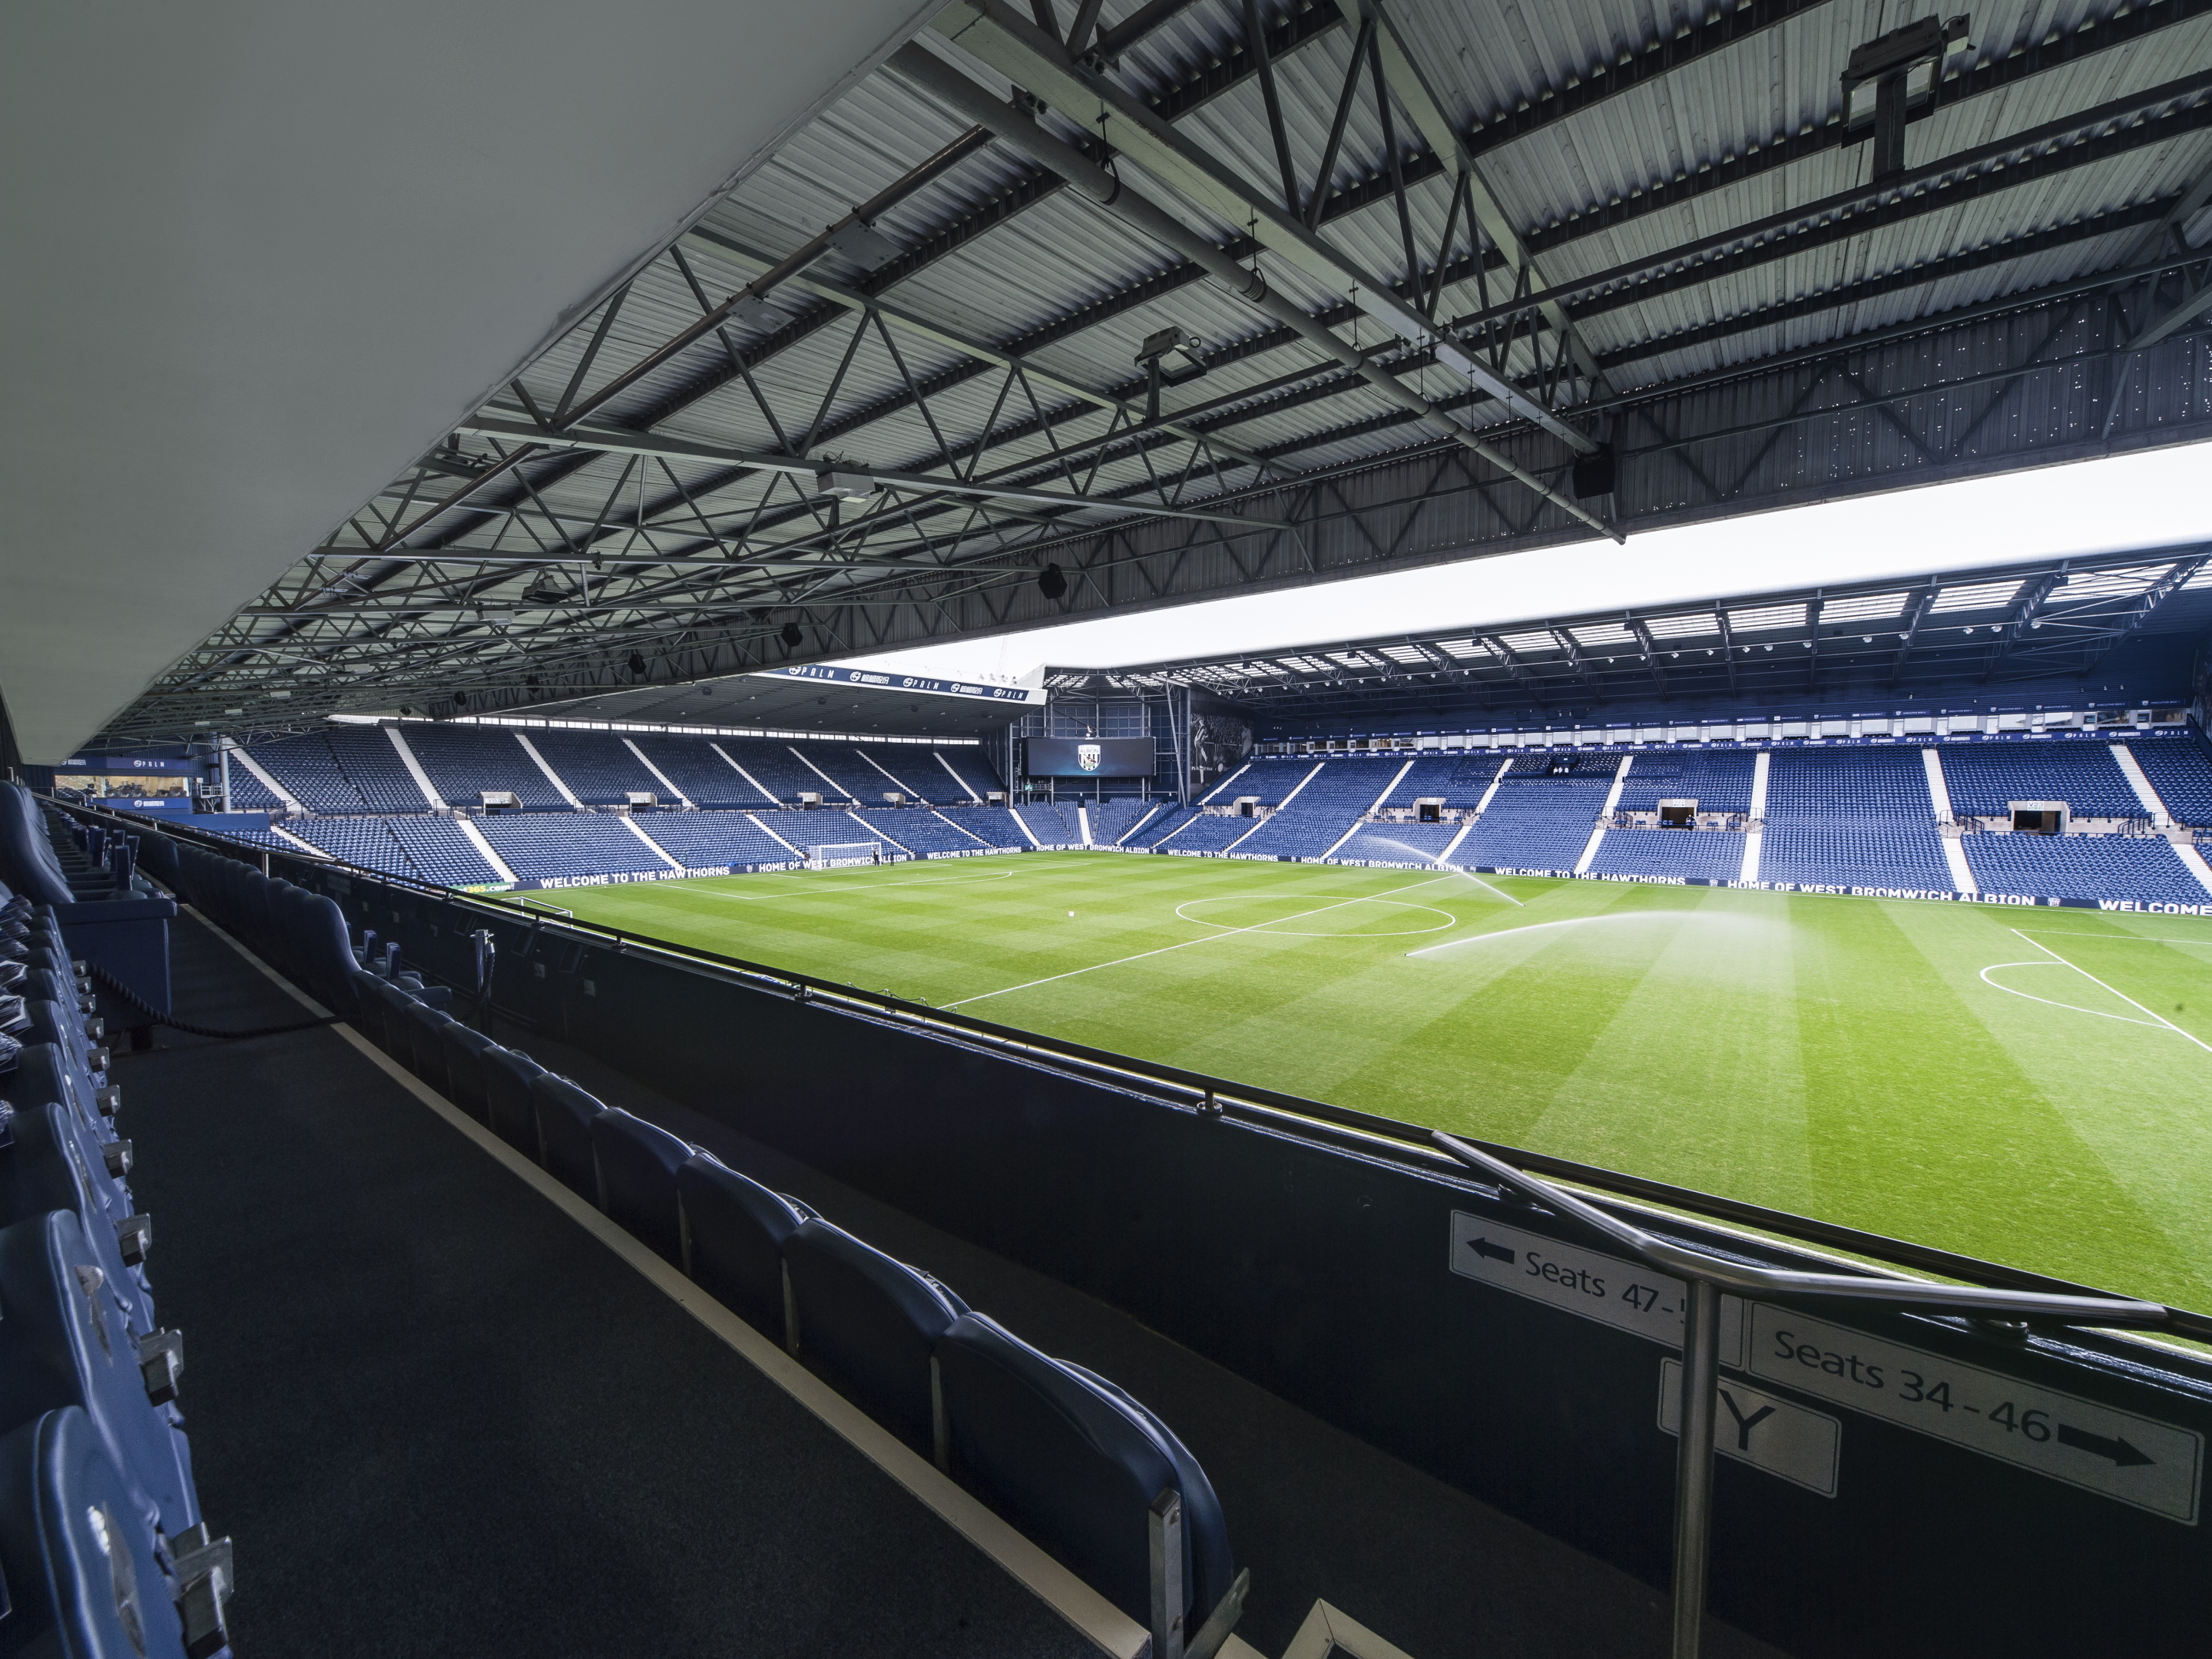 West Stand View